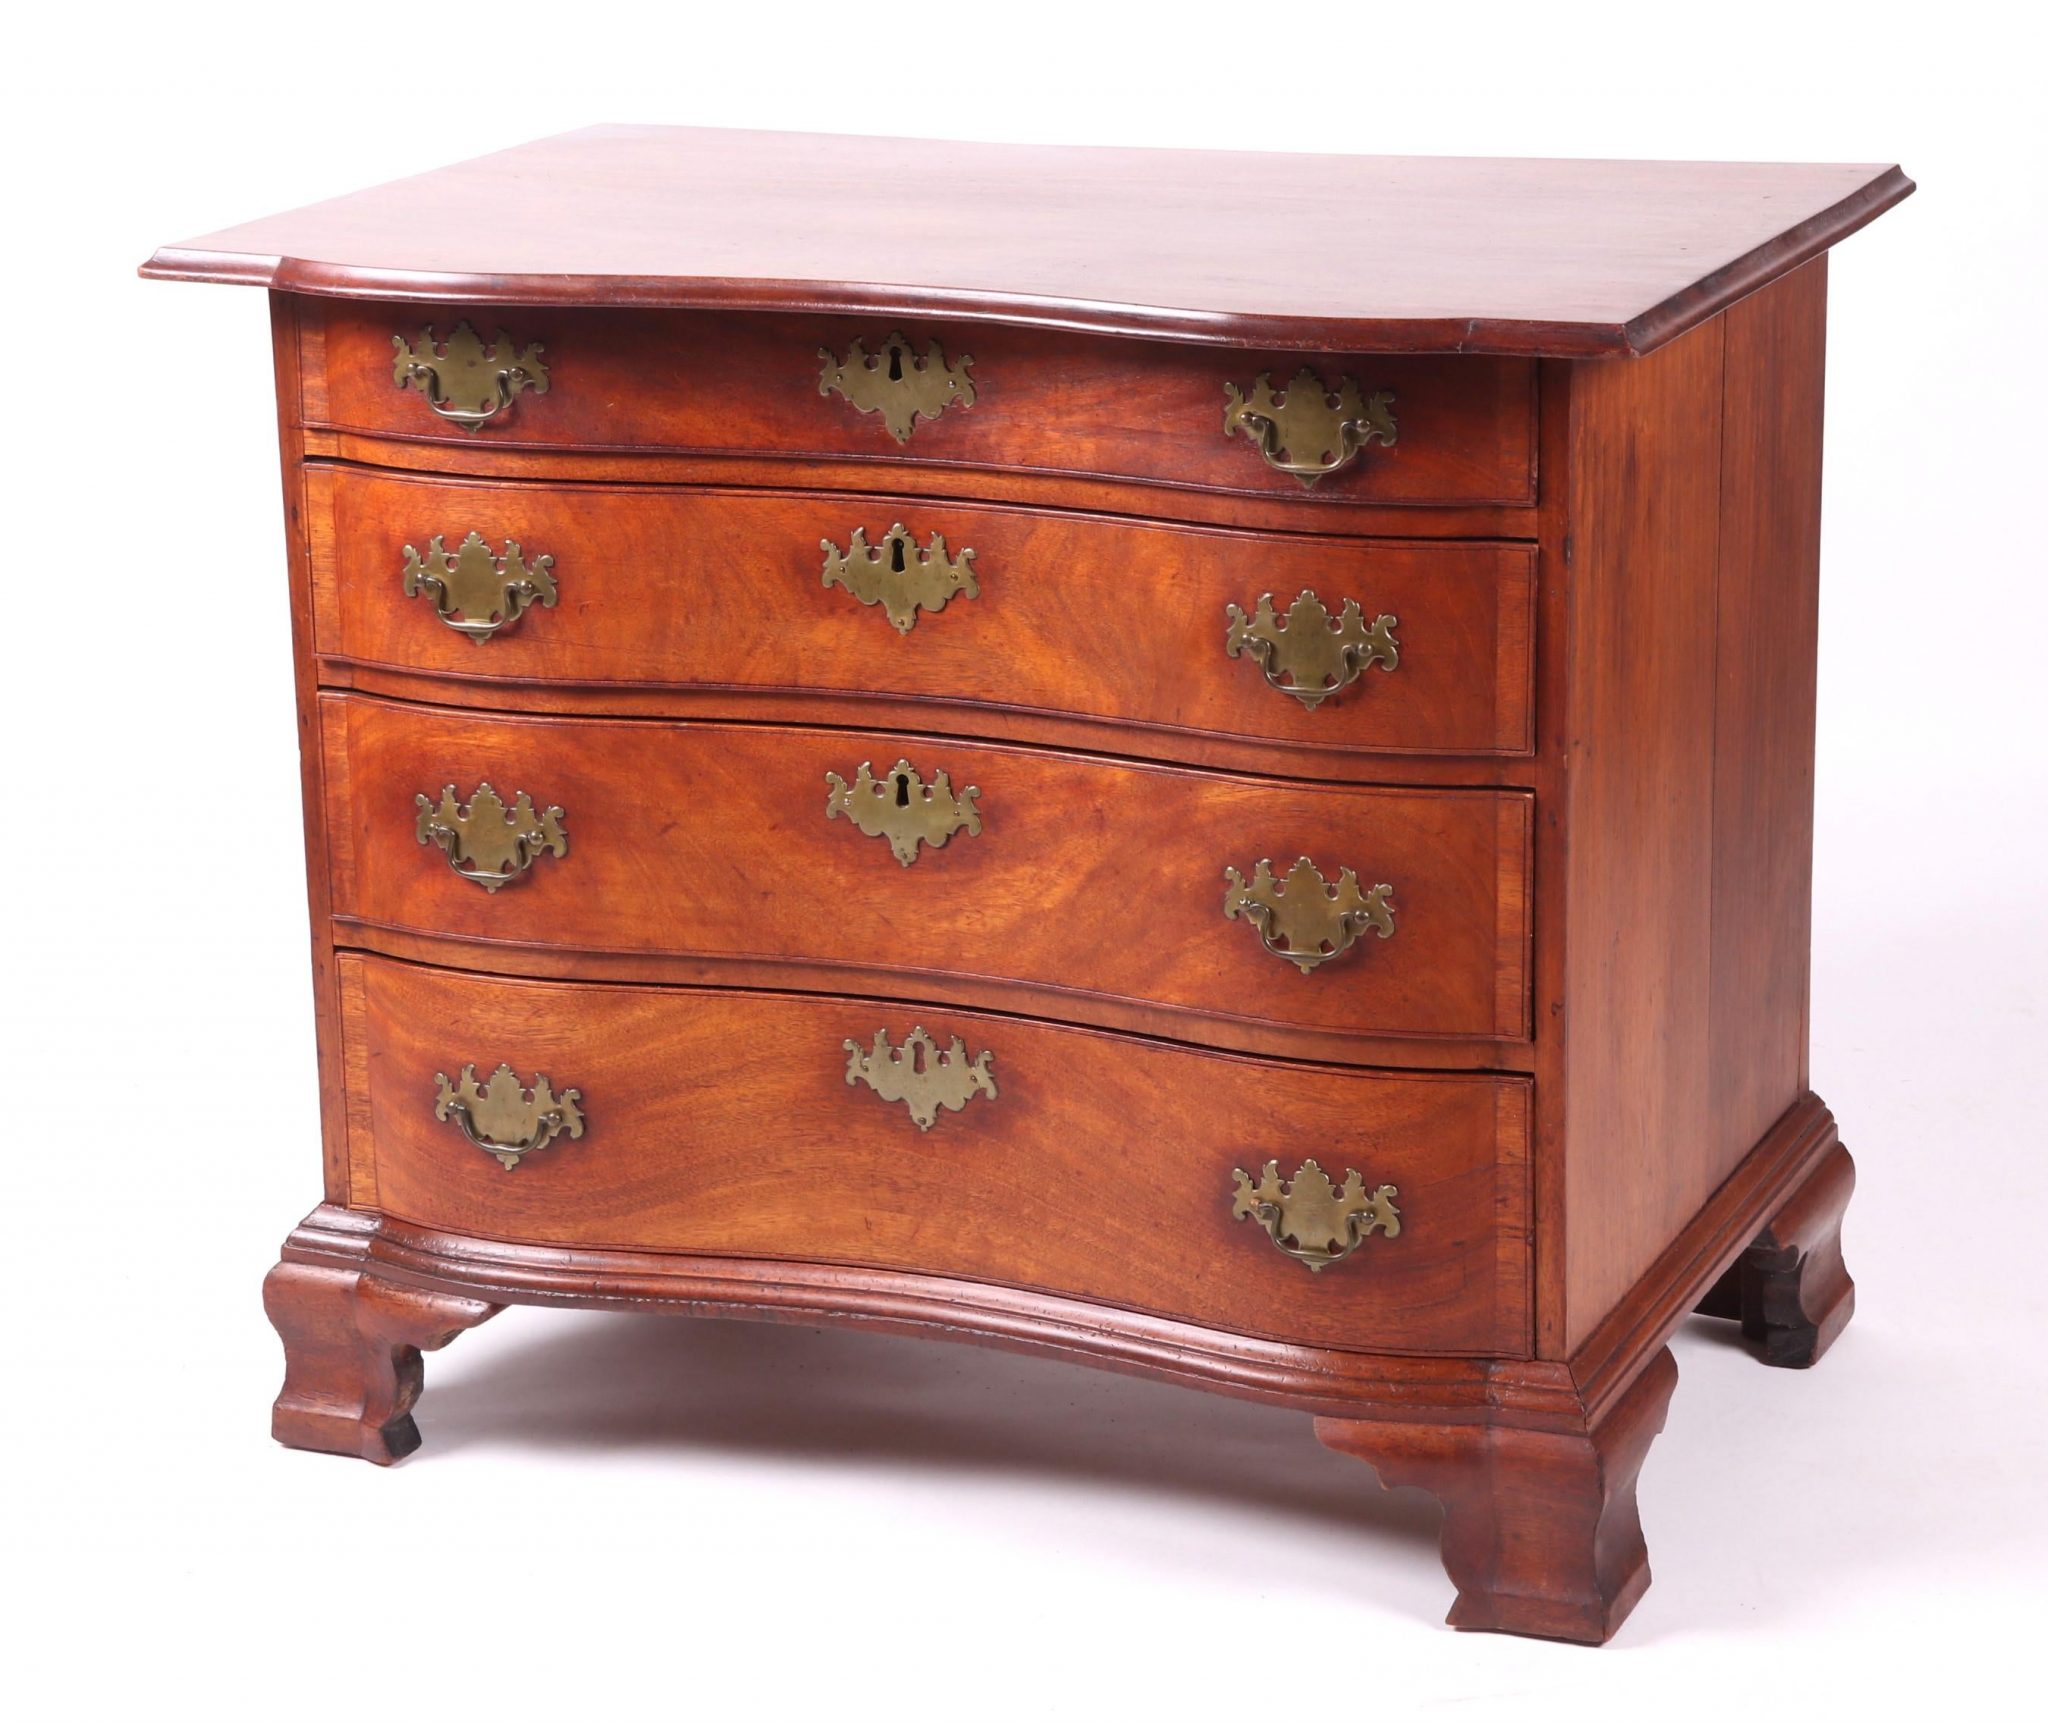 1019011: Reverse Serpentine Blockfront Chest of Drawers, Realized $12,500